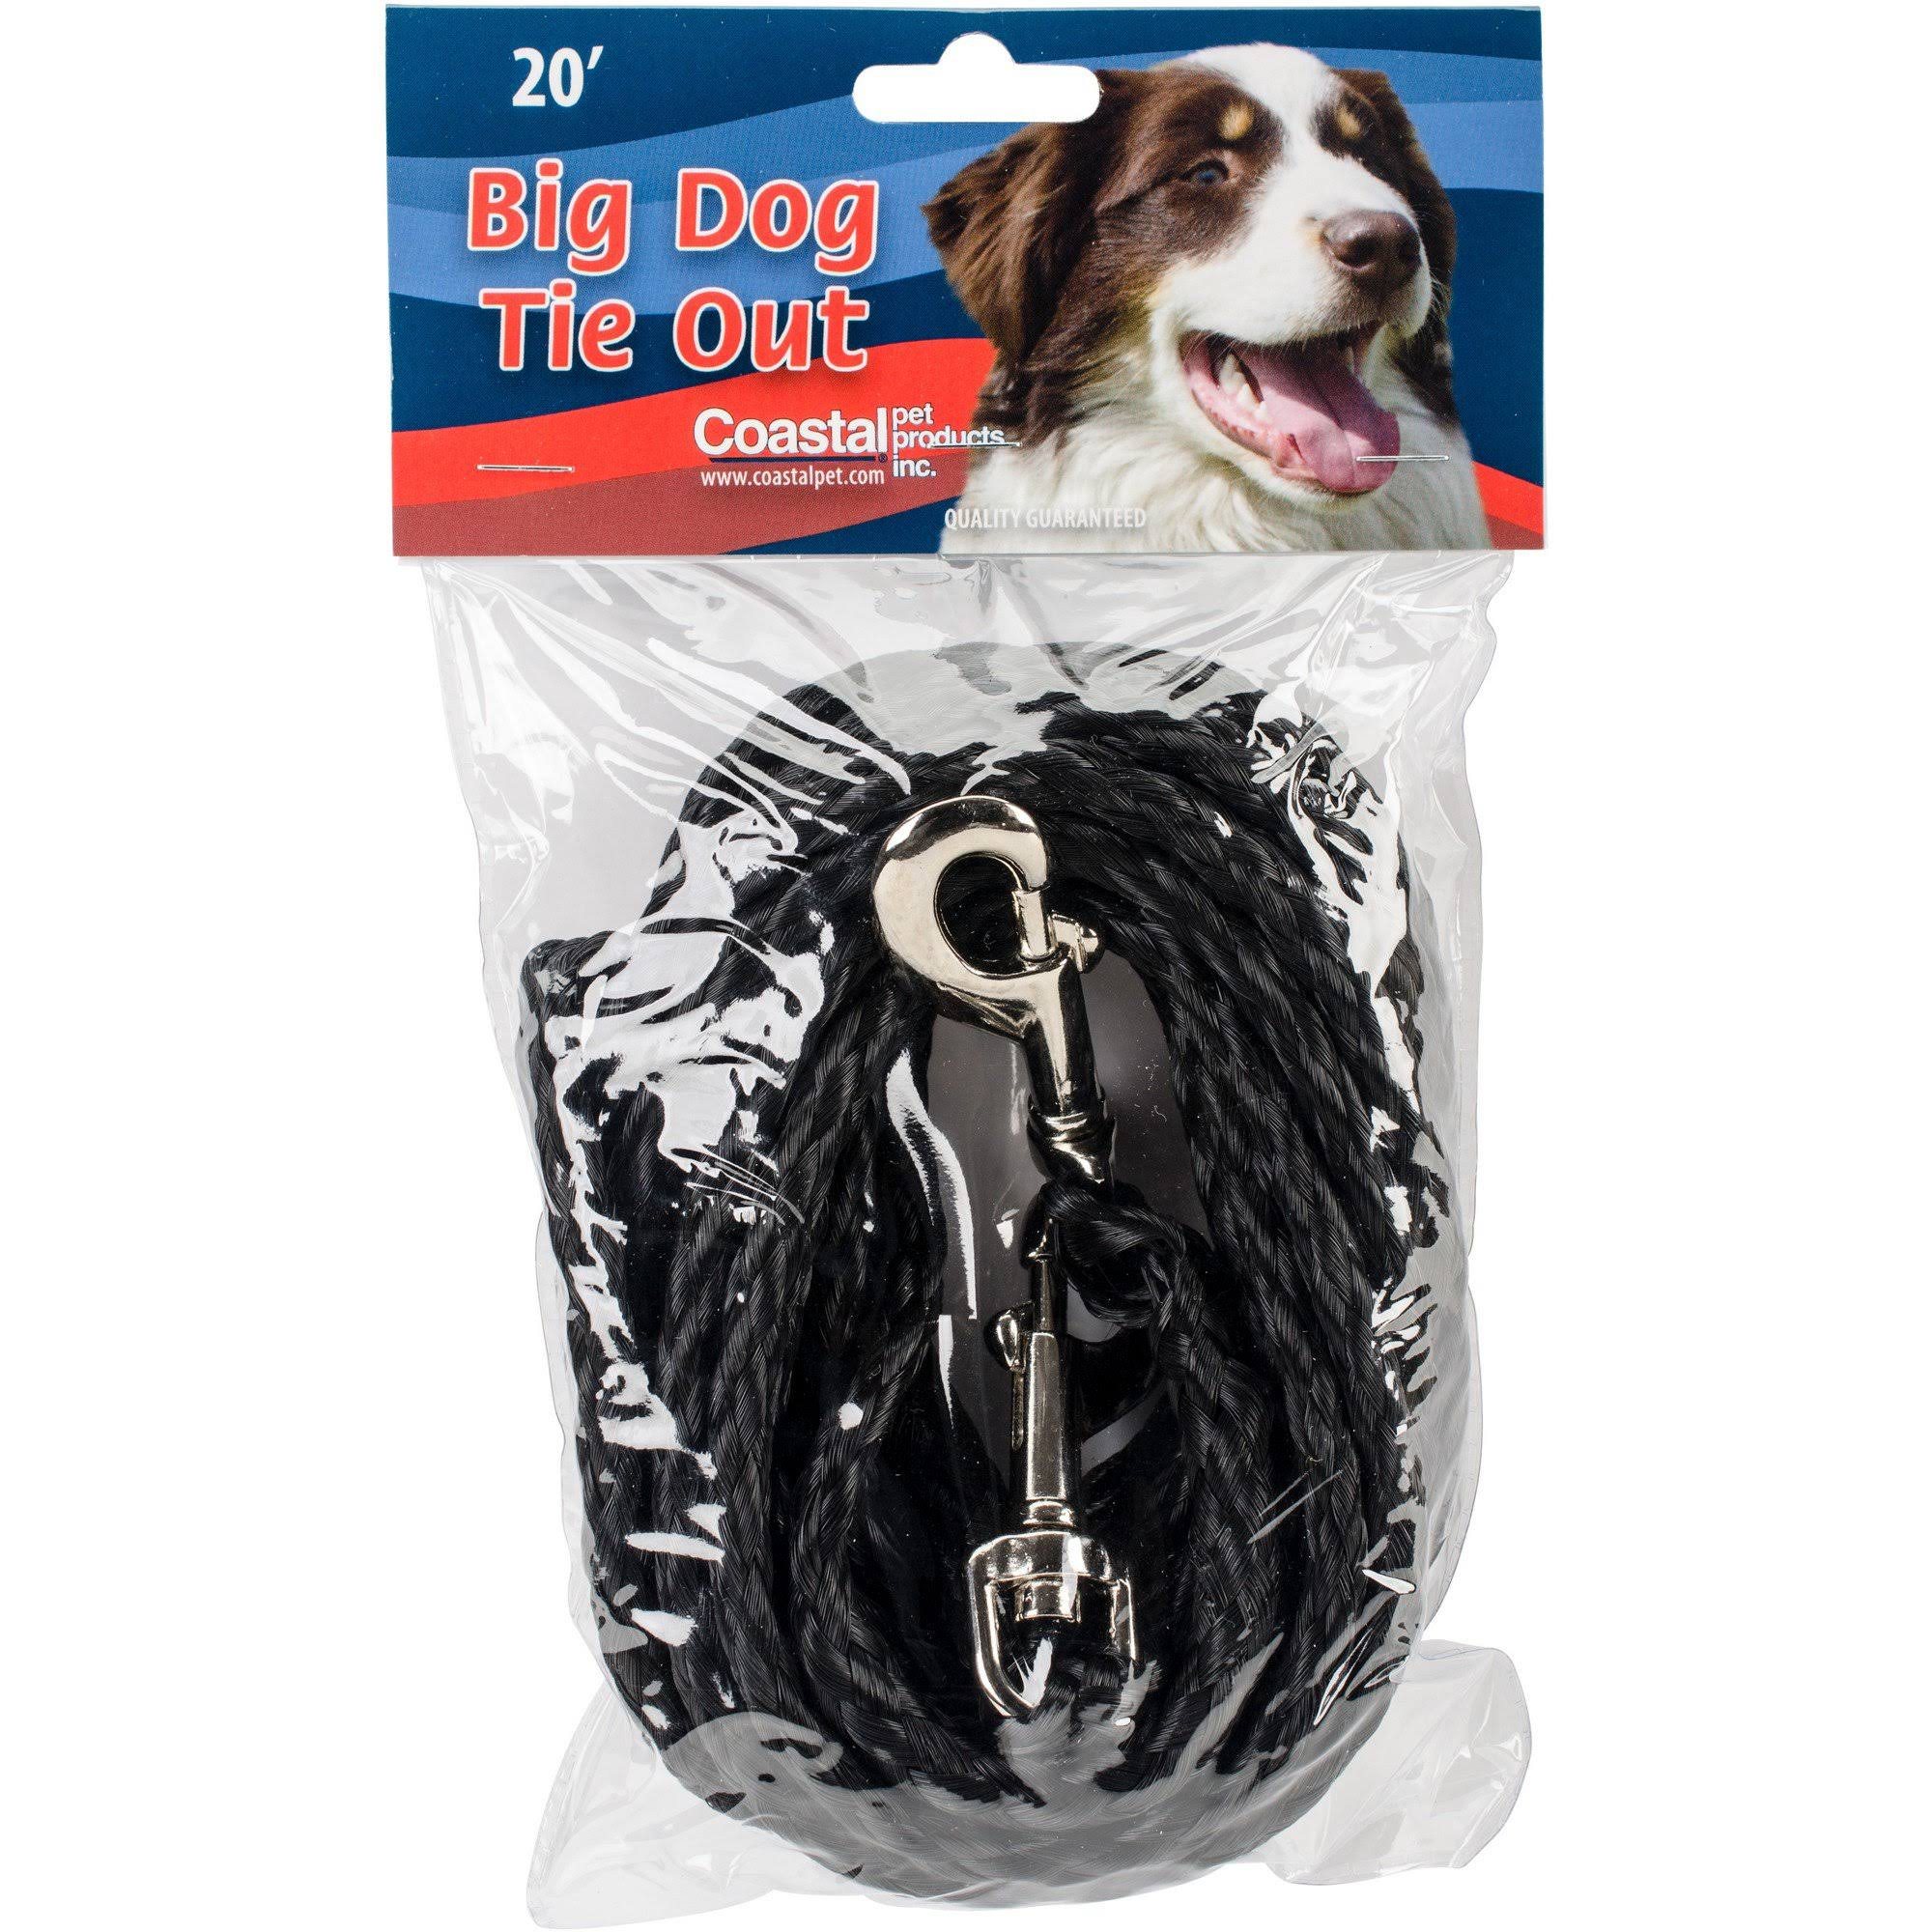 "Coastal Nylon Poly Dog Tie Out - Black, 3/8"" x 20'"